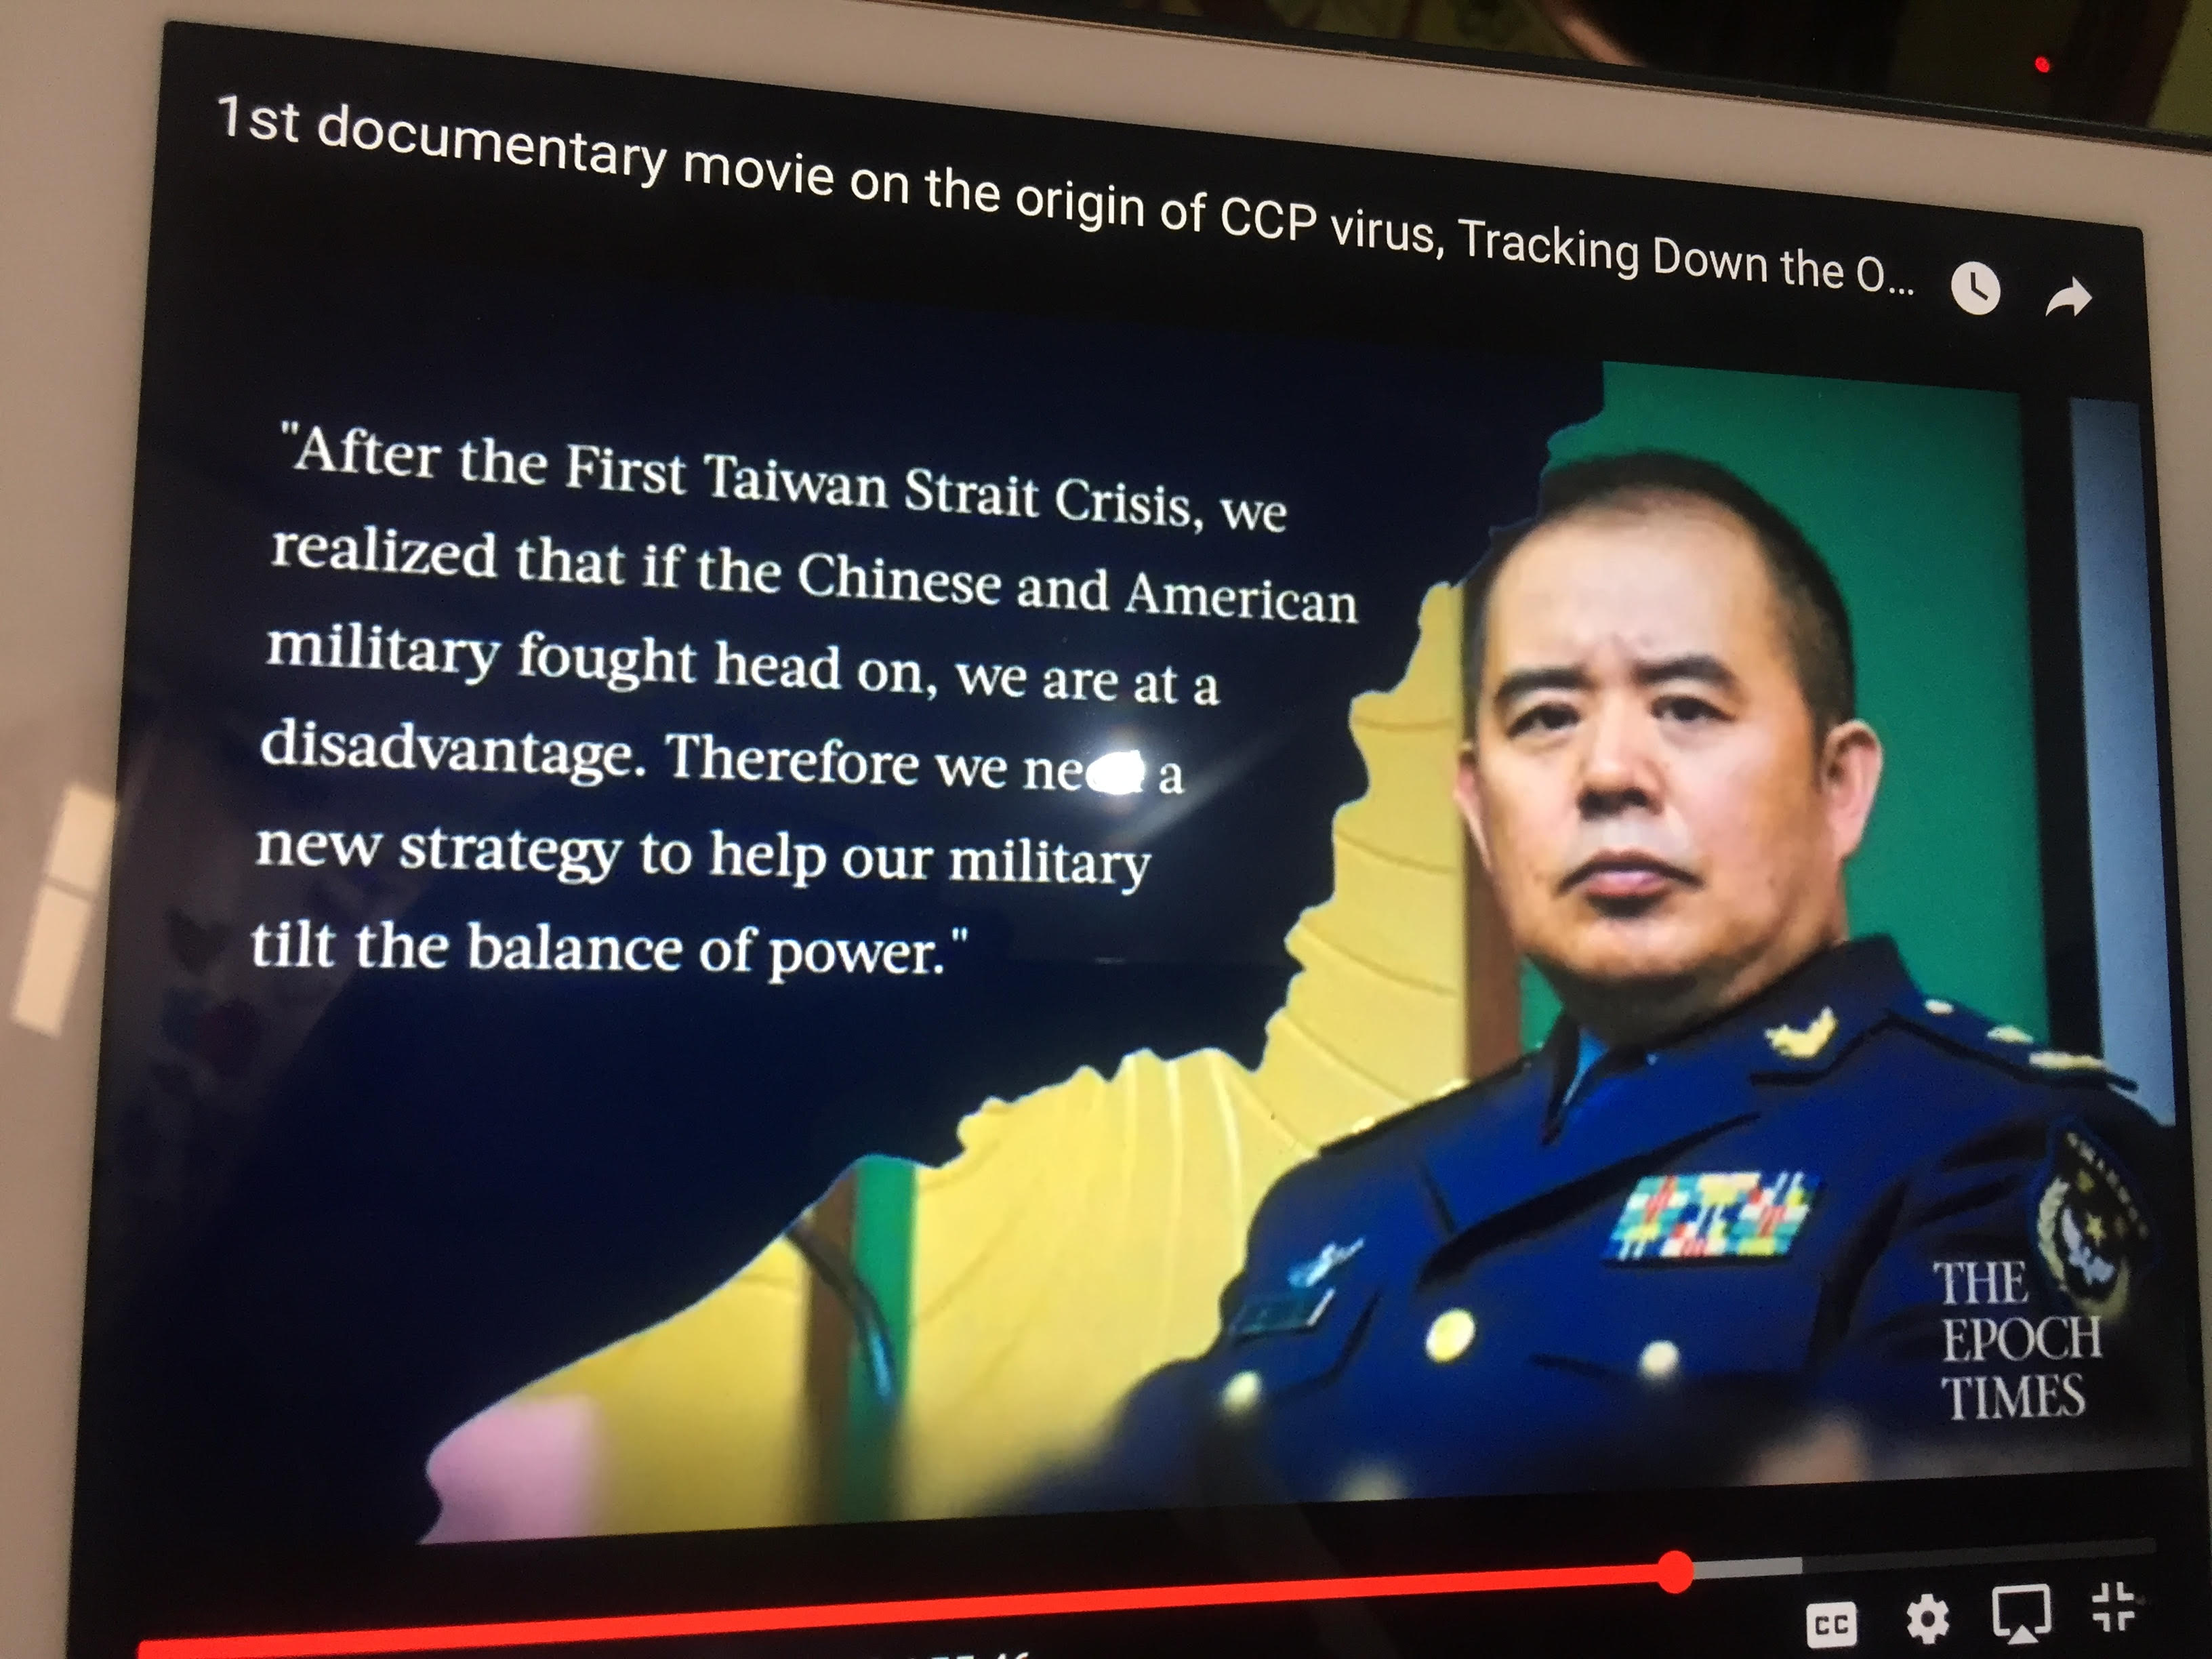 IDF ANALYSIS OF 'EPOCH TIMES' EXPOSÉ DEPICTING COVID-19 WAS MORE 'A NEGLIGENT HUMAN LEAK' OF THE SYNTHETIC VIRUS FROM WUHAN'S P4 MILITARY LAB THAT CHINA DENIED TO GUARD CCP & XI IN POWER WITH CHINA'S SECRECY & INFORMATION WARFARE(IW) MACHINE & SUPPRESSED ALL --COVID WILL INFECT GENERATIONS IF IT IS A VIRULENT MAN MADE VIRUS AS  ANTIDOTES & VACCINES WILL BE CAHLLENGING